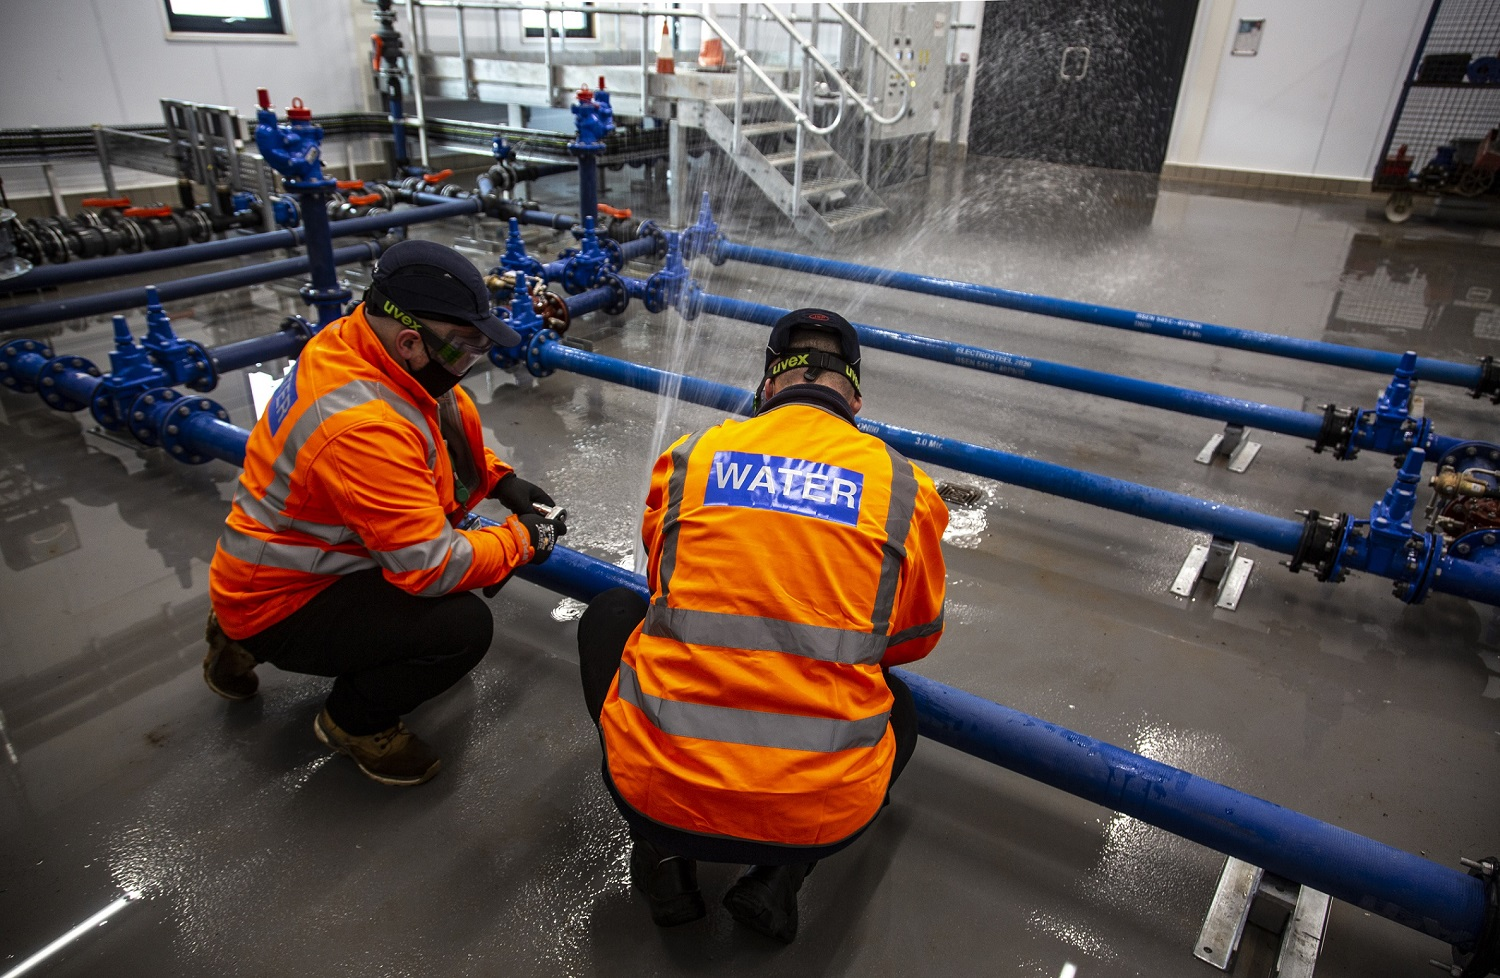 Operational training areas are designed to replicate the challenges faced by Severn Trent workers, such as working with pressurised pipes.